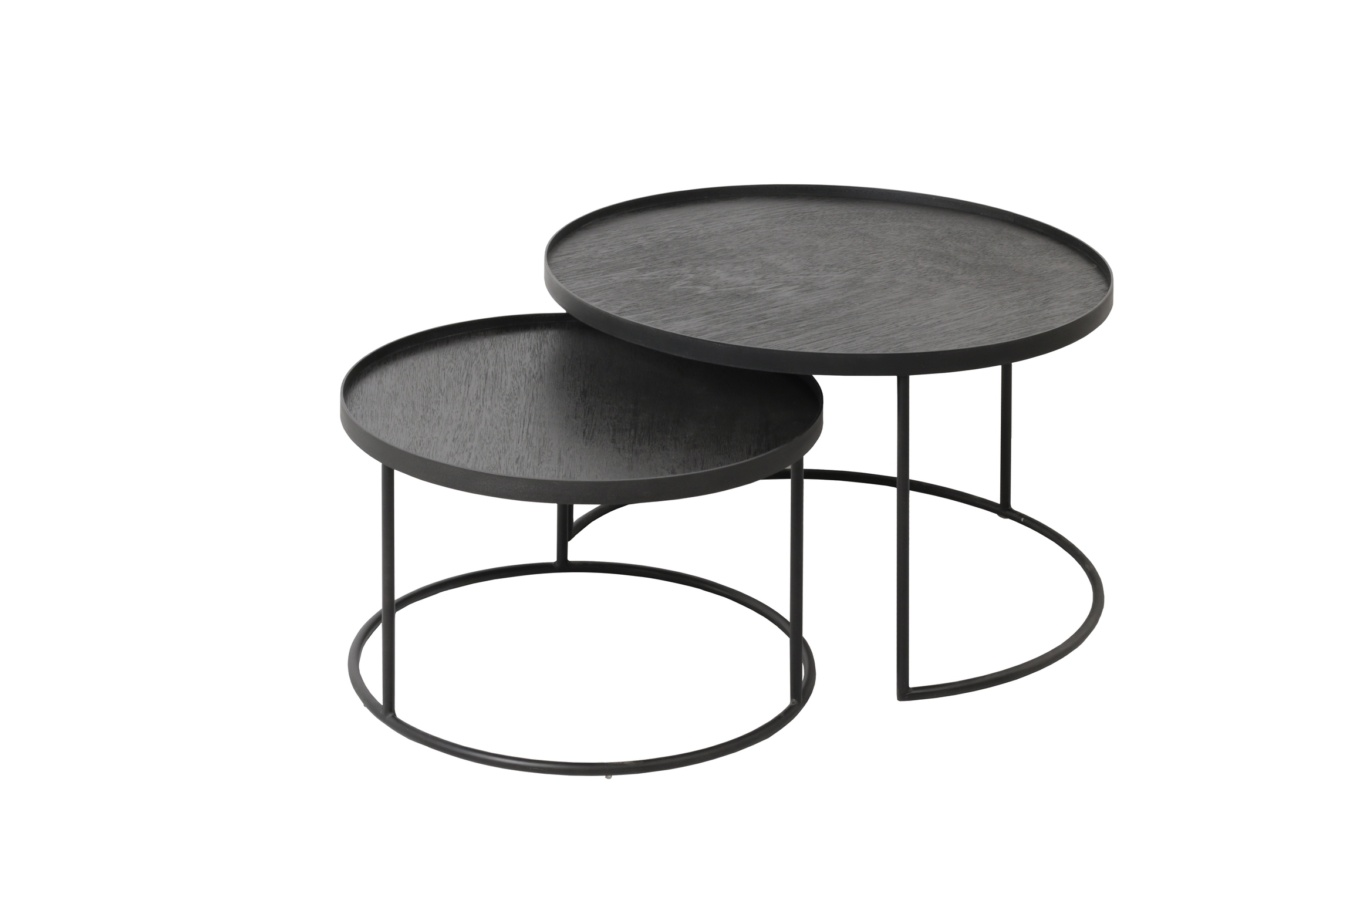 Koop Round Tray Tableset S/L by Ethnicraft